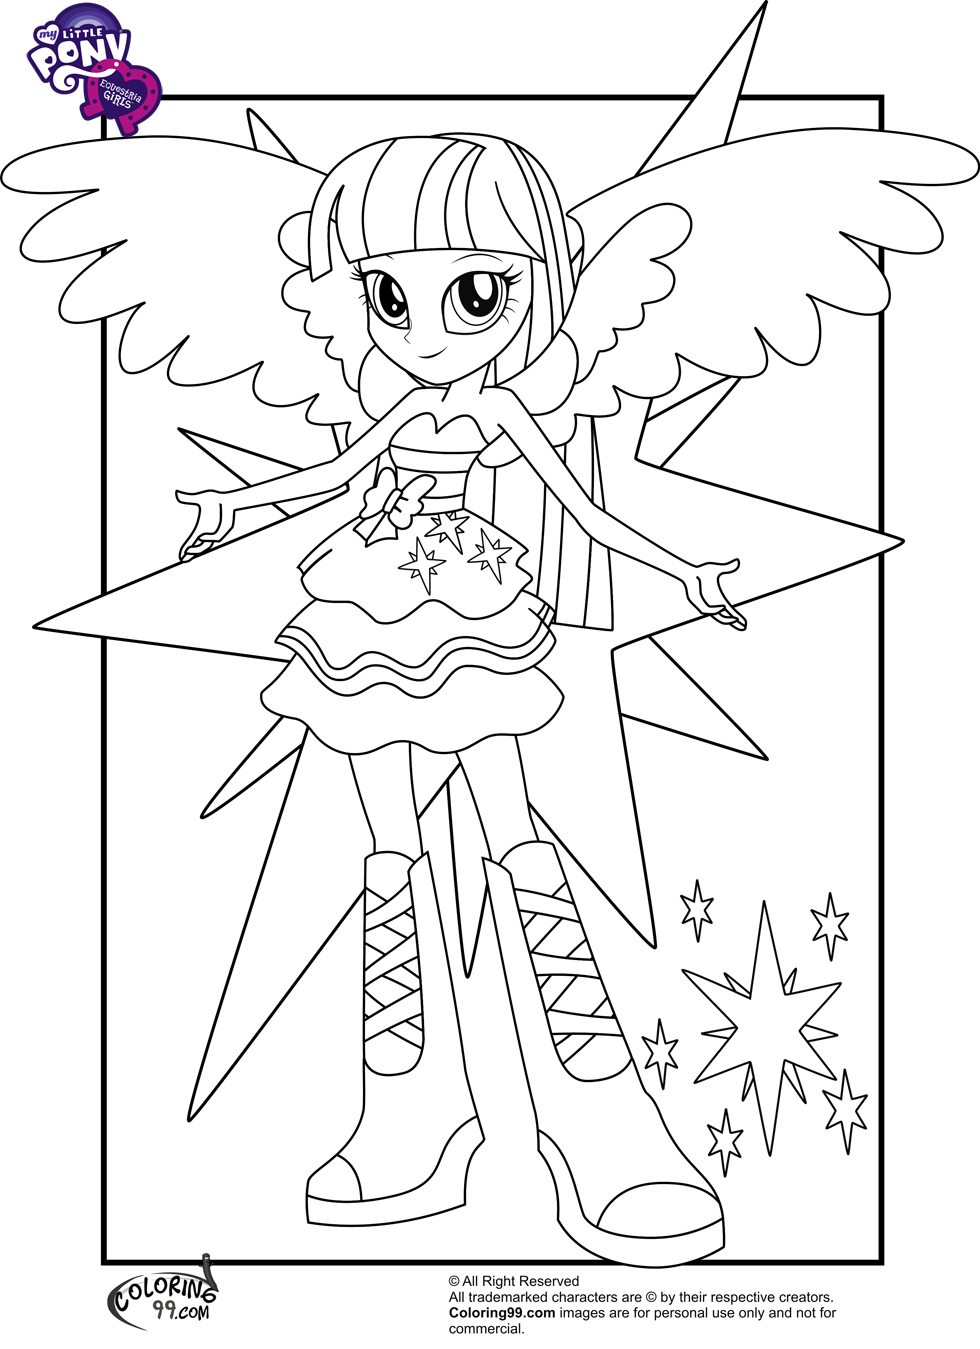 Coloring Pages Of My Little Pony Equestria Girls Rainbow - my little pony equestria girl coloring pages to print